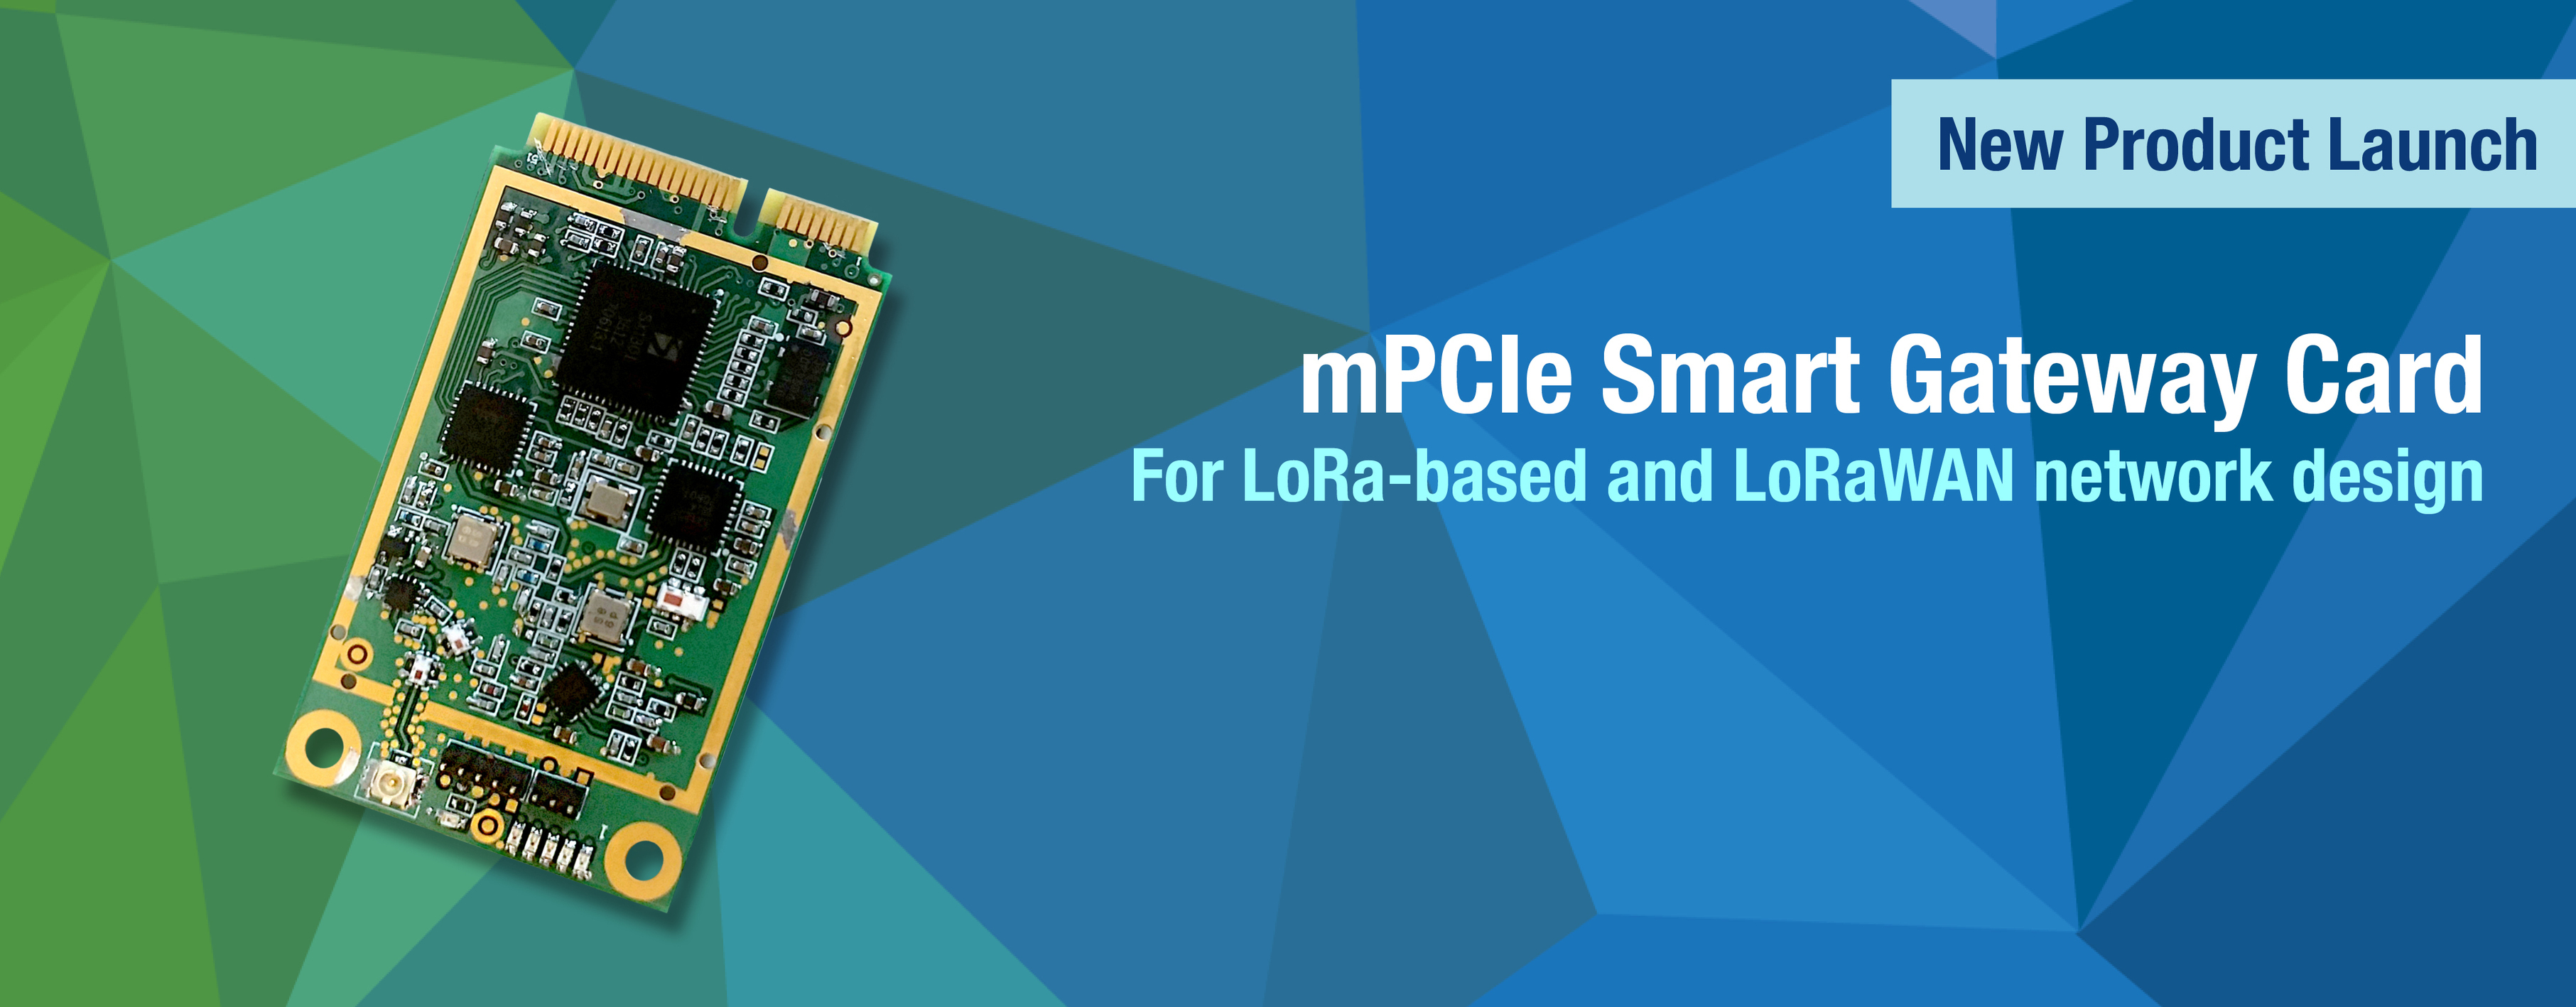 Just another mPCIe LoRa Gateway Card   The Fren